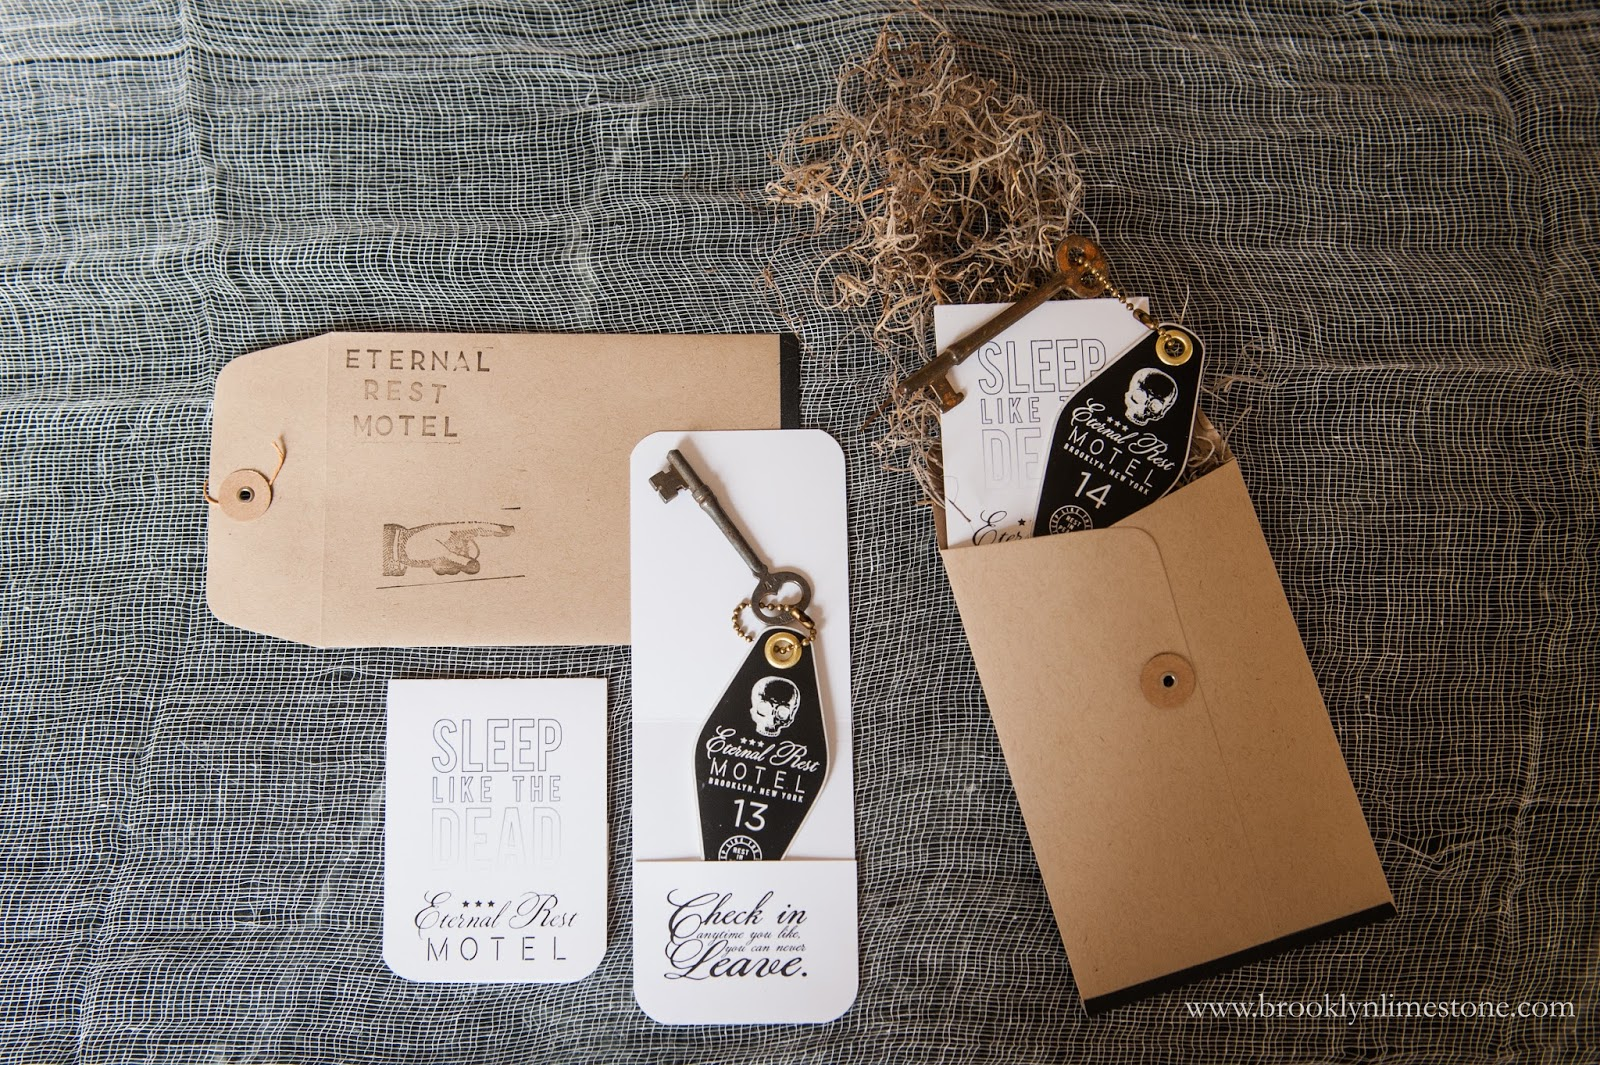 Eternal rest hotel key fobs halloween invitations brooklyn limestone i had the key fobs printed online using my design and i made the folios on my home printer and stuffed the whole thing into a kraft paper button string stopboris Choice Image